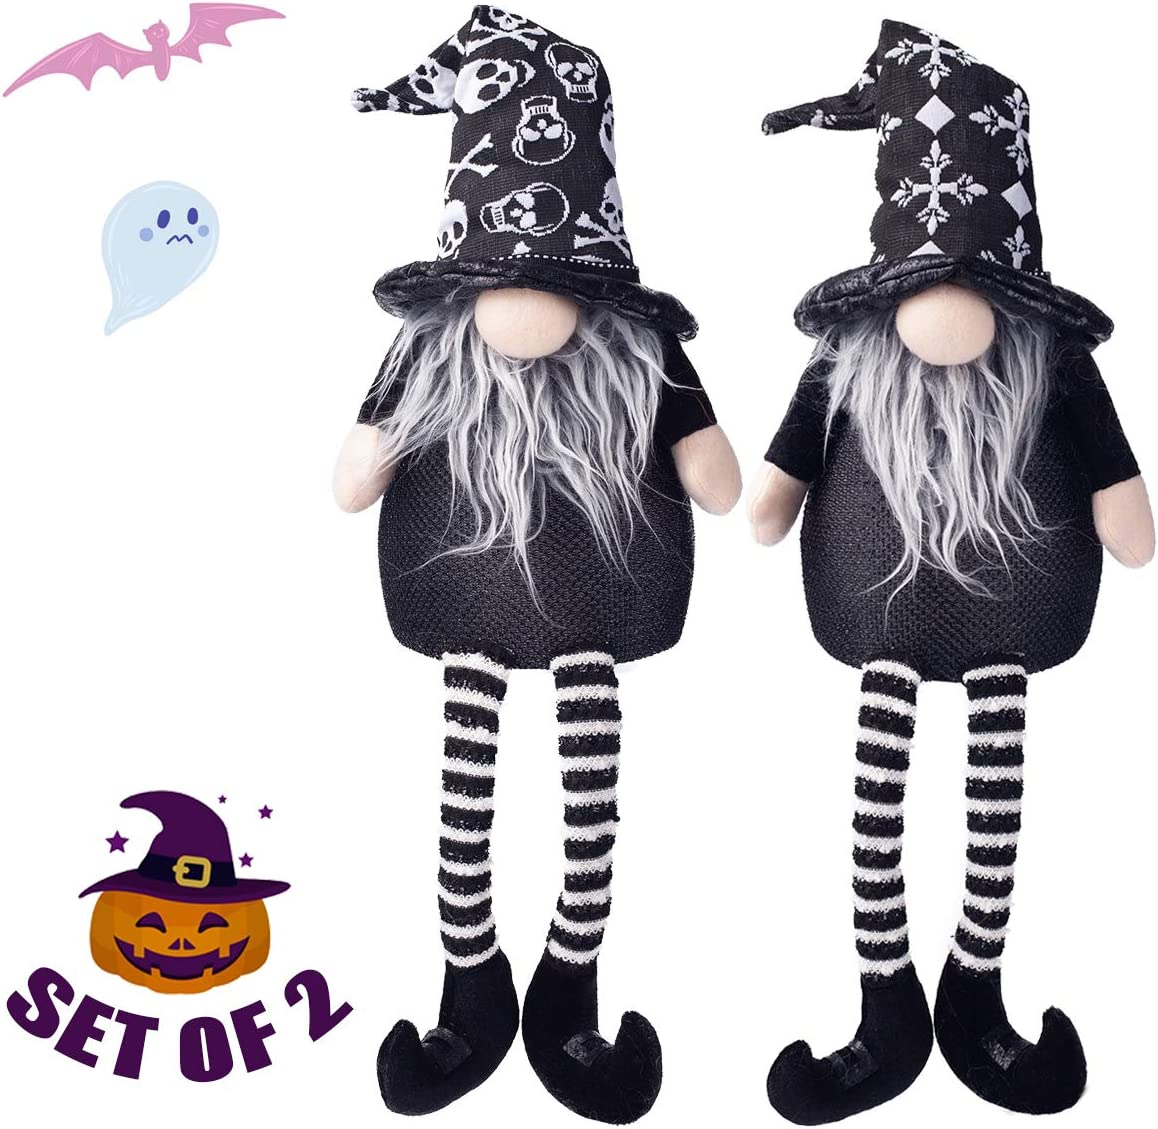 EDLDECCO Halloween Gnomes Set Light with Timer Set of 2 Nisse Swedish Nordic Tomte 22 Inches Decor Wizard Witch Hat Home Party Decorations(Black & White)